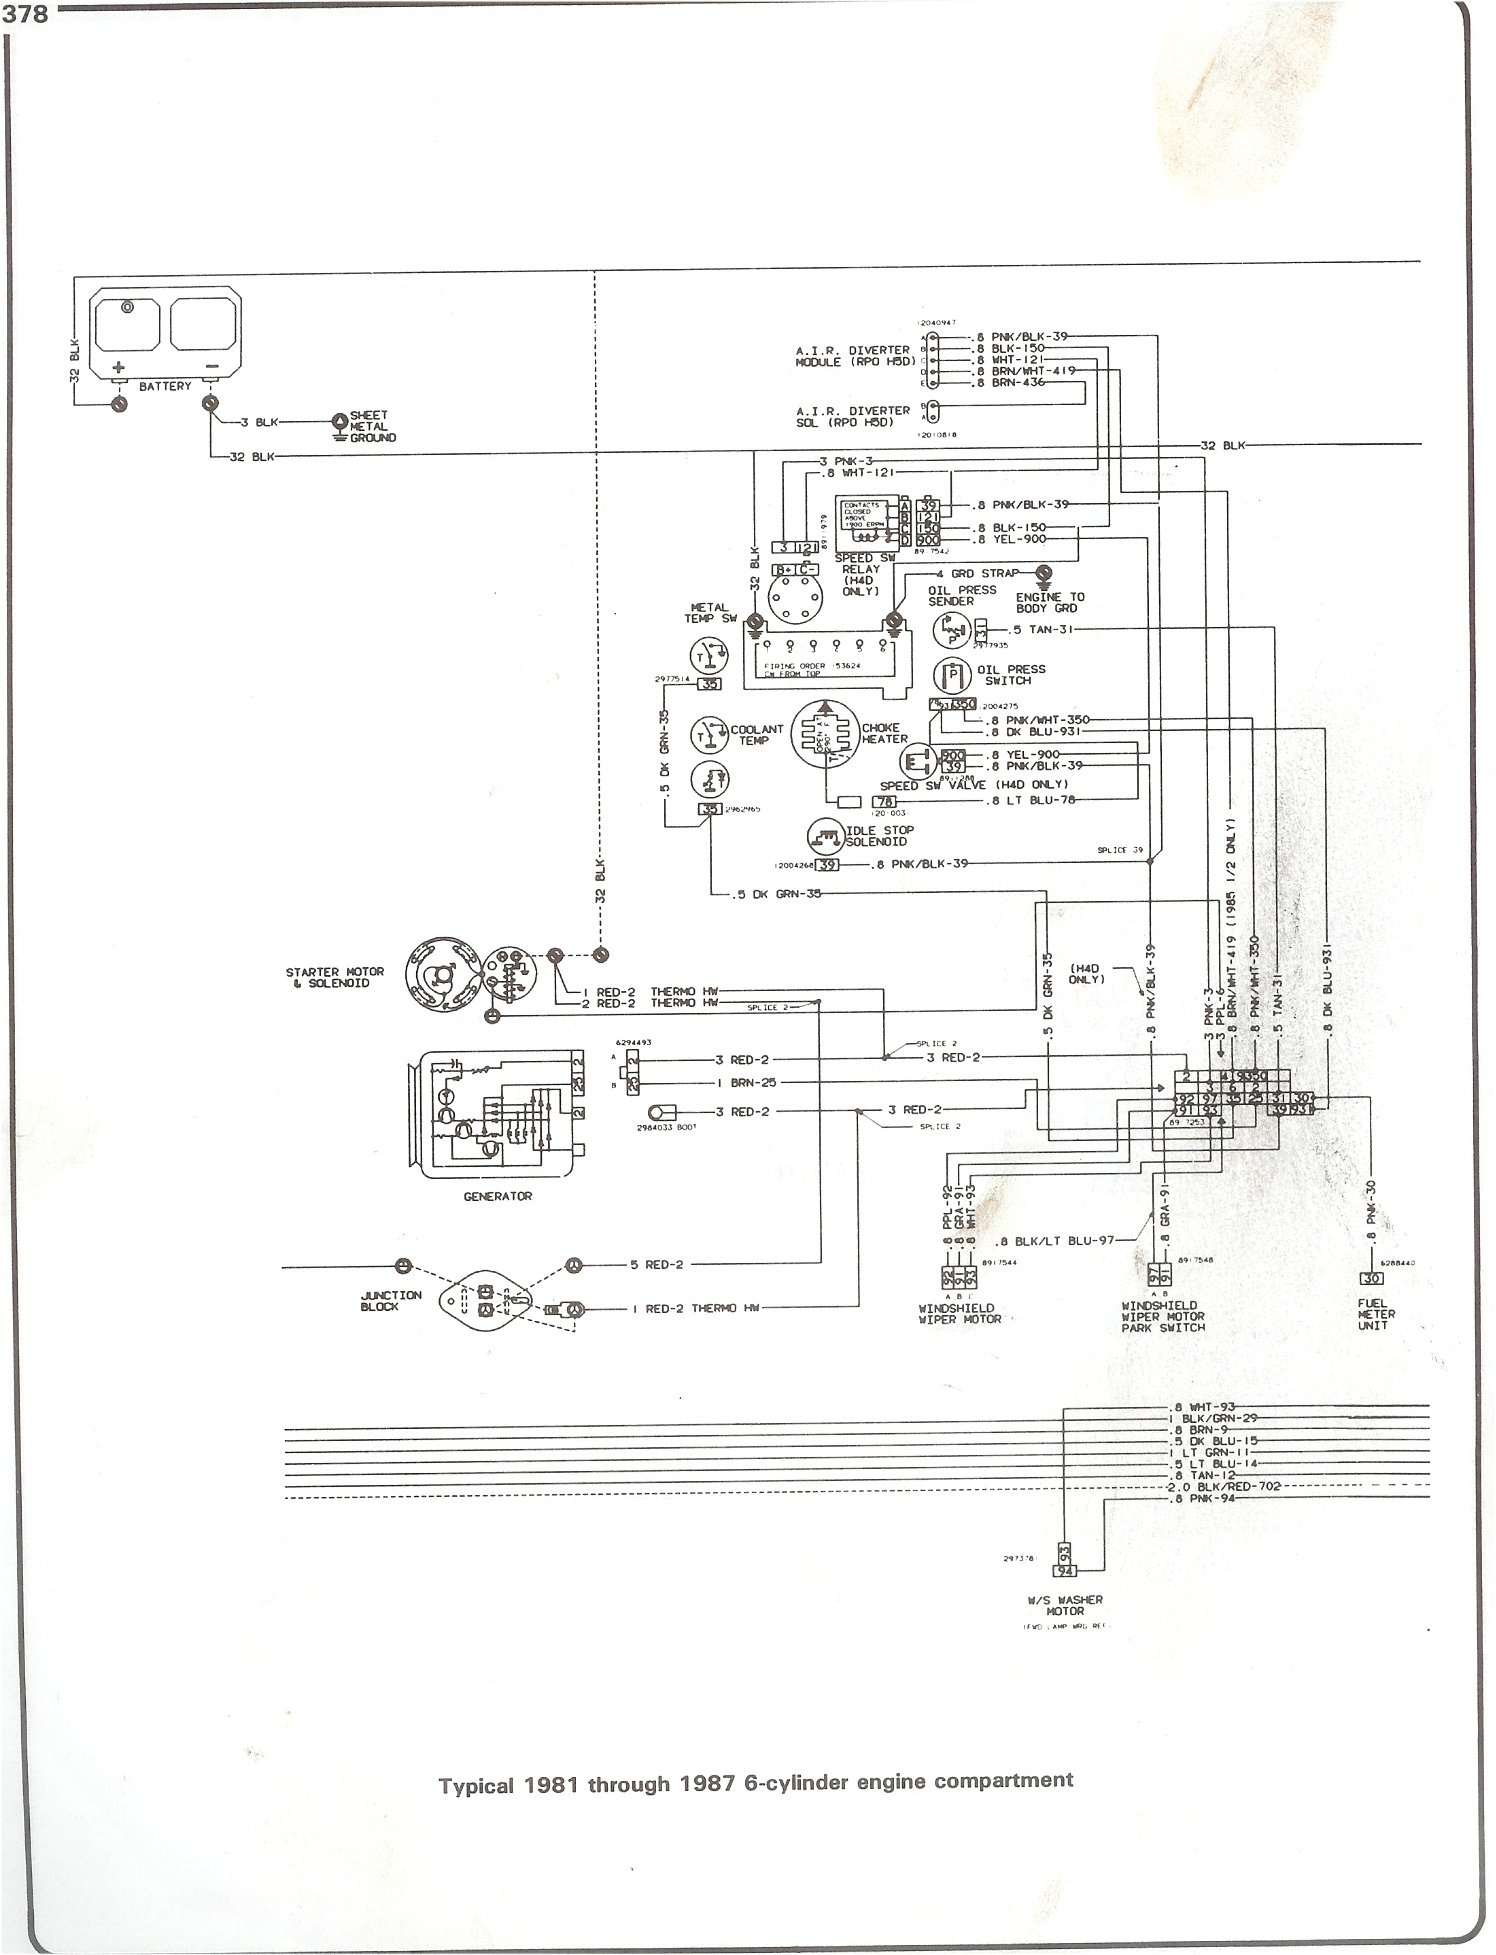 1974 Chevy Pickup Wiring Diagrams Schematics 1963 Chevrolet Images Gallery